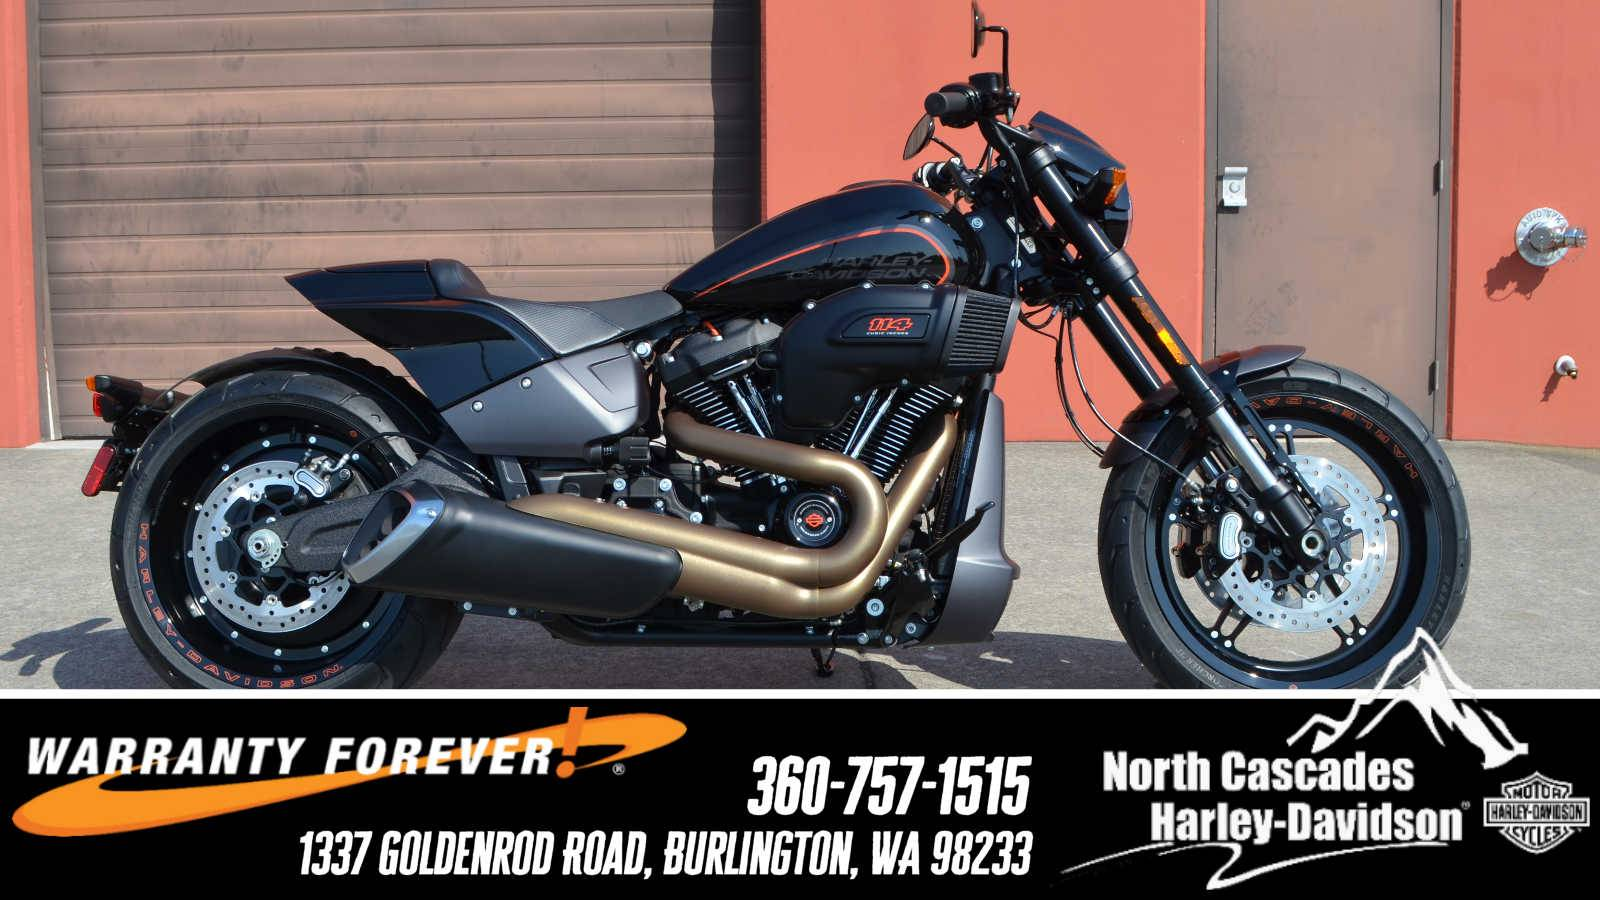 New Models 2019 Harley Davidson Fxdr 114 Review: New 2019 Harley-Davidson FXDR™ 114